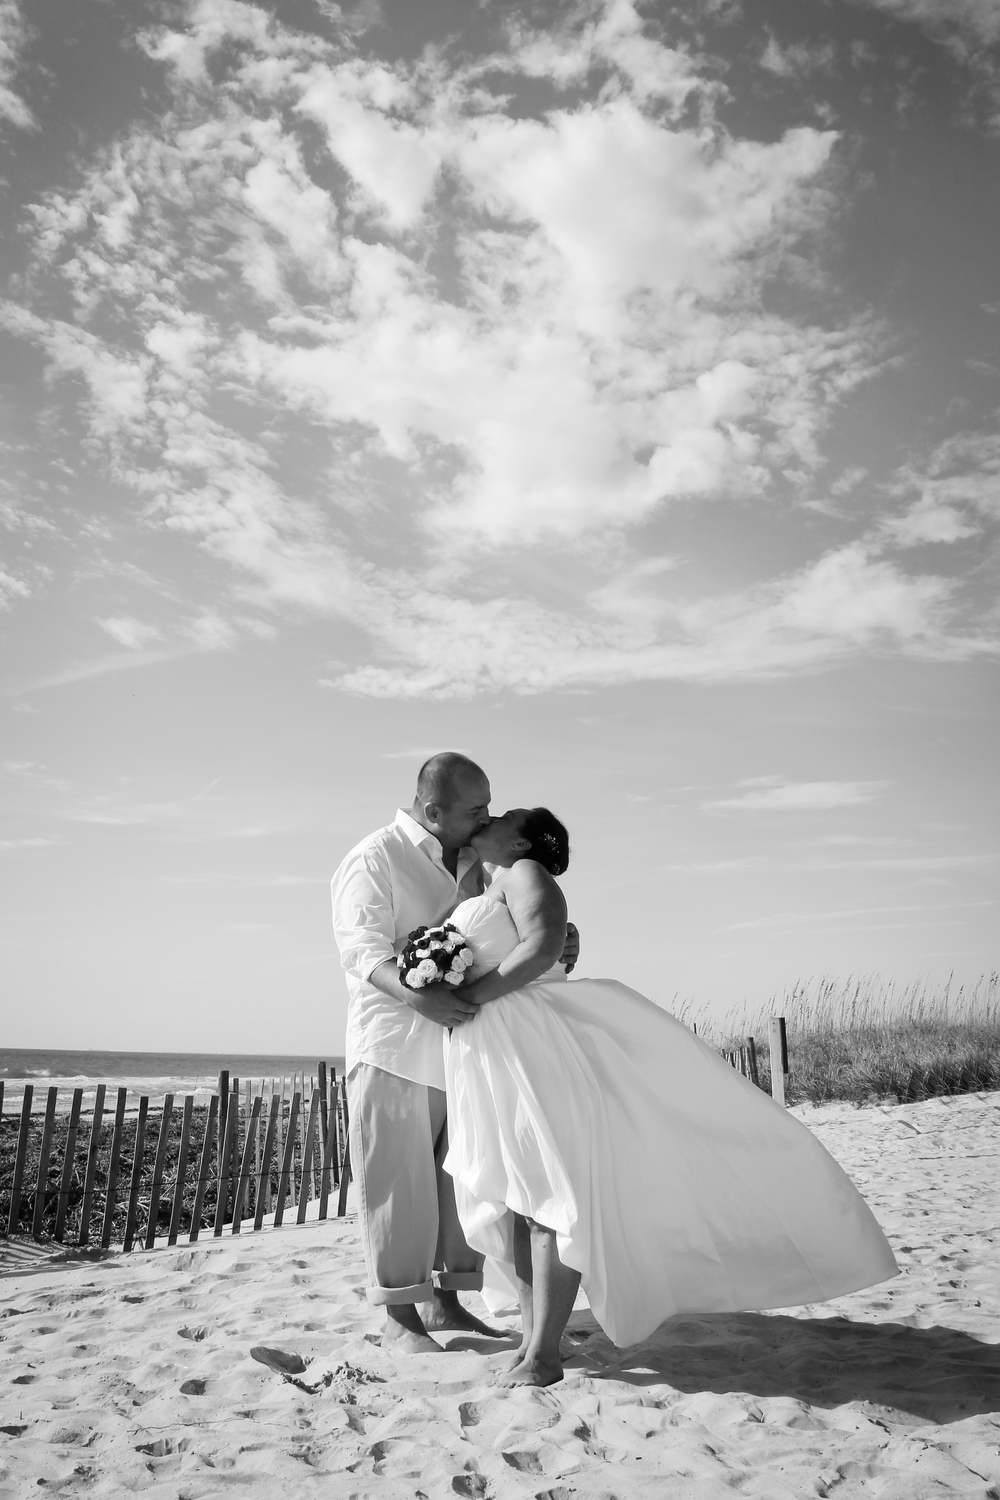 Vow Renewal Cermony on the beach Hilton Head Island, SC